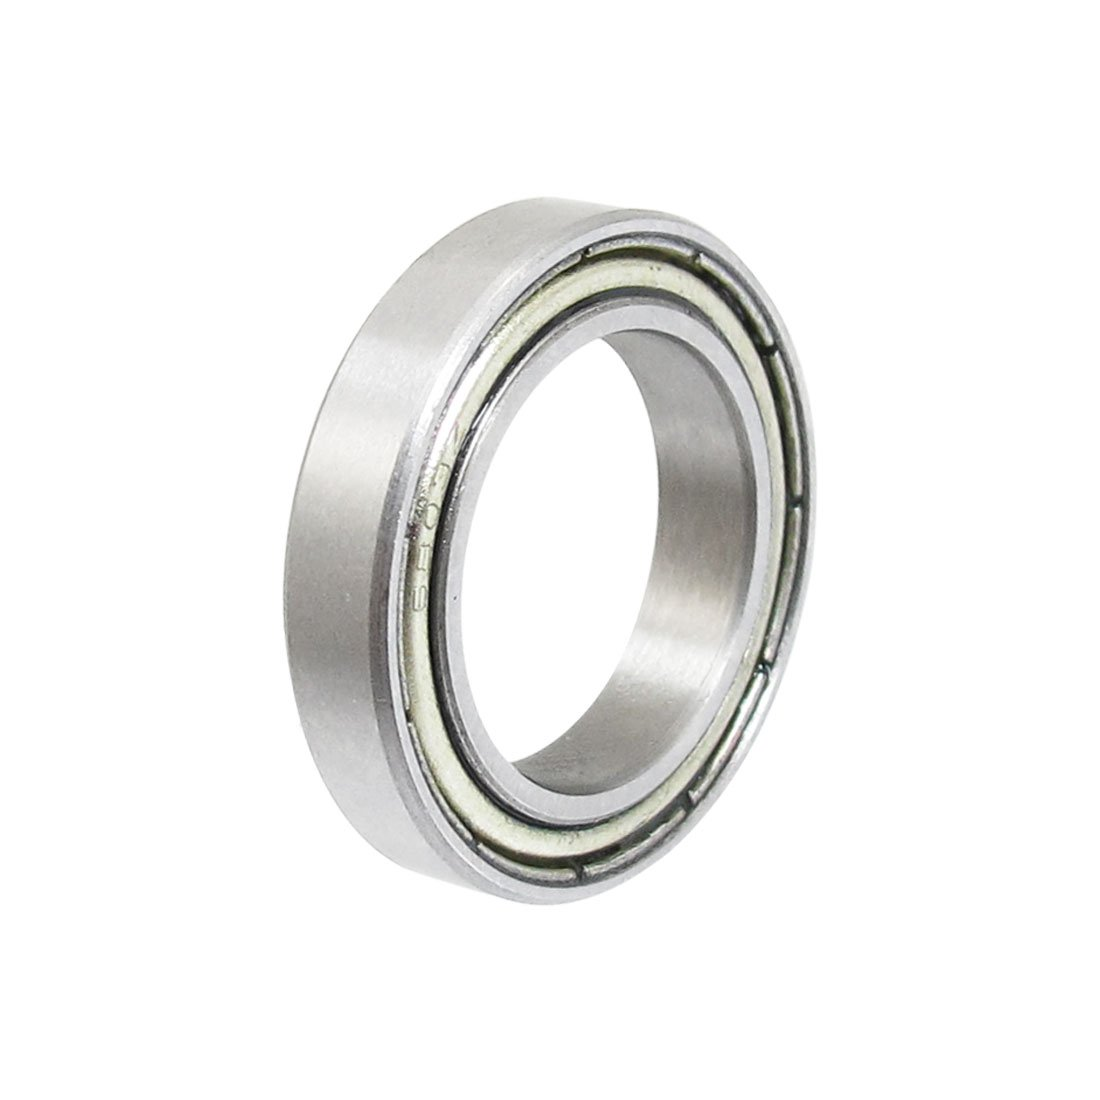 0.67 Metal 0.2 Width Uxcell a12102200ux0342 17 x 26 x 5mm 6803 Shield Deep Groove Ball Thin-Section Radial Bearing